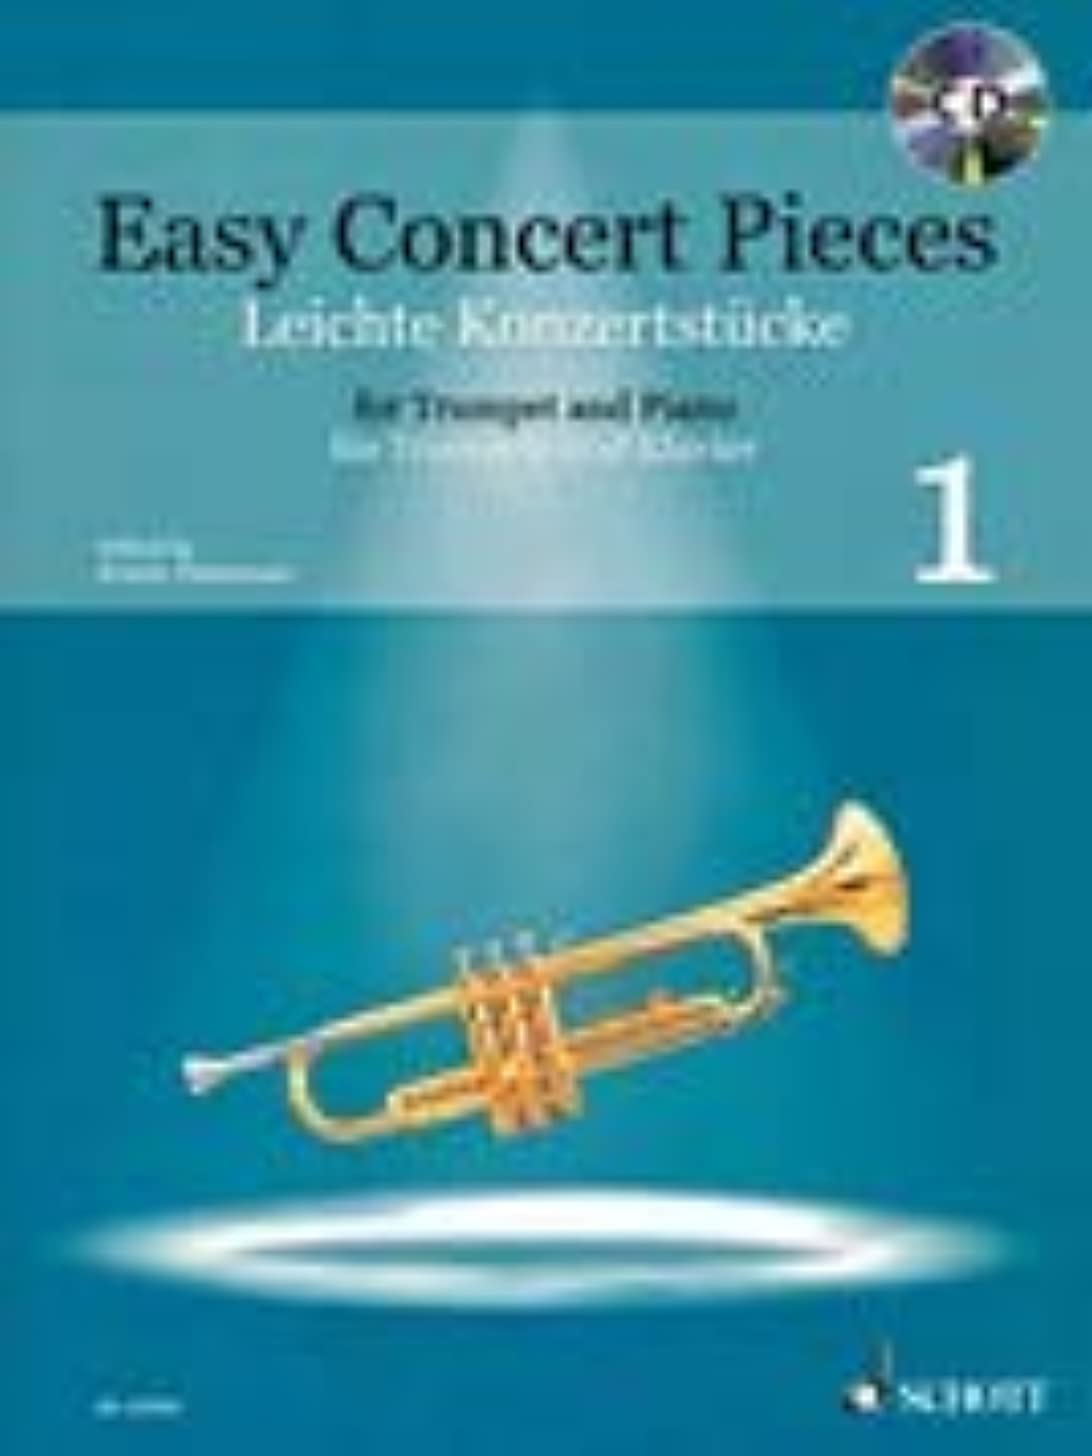 Easy Concert Pieces - Volume 1: 22 Pieces from 5 Centuries Trumpet and Piano